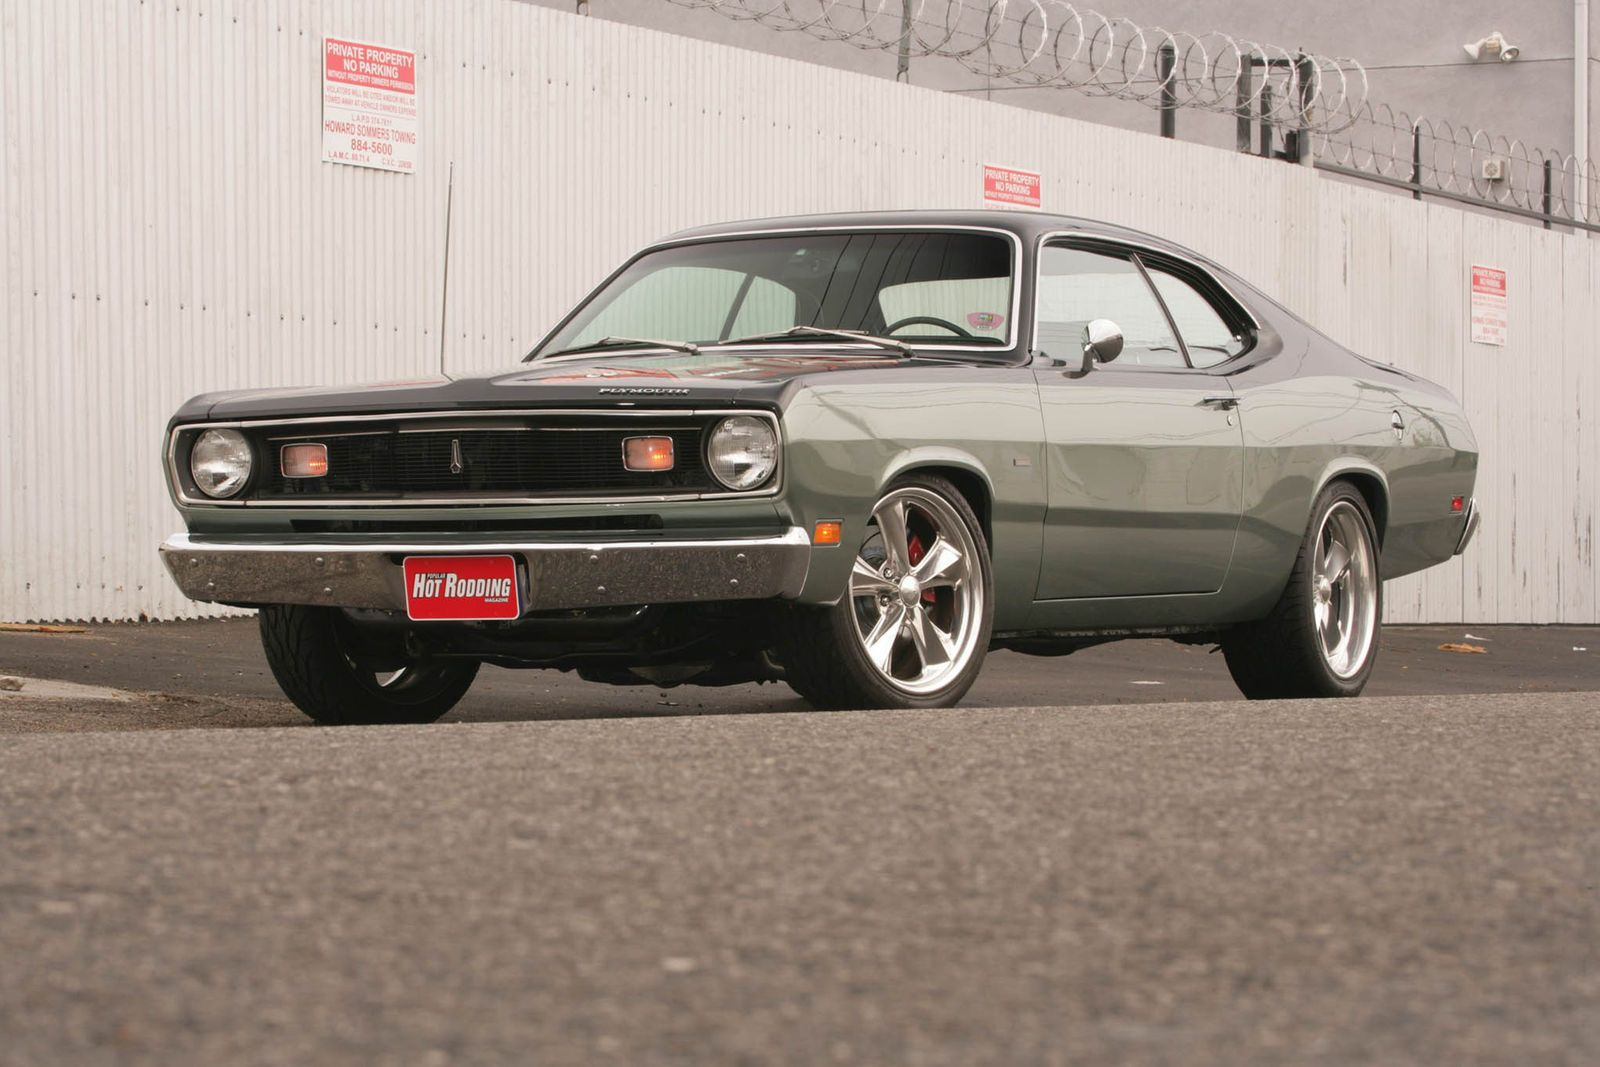 Some Of Our Favorite Plymouth Valiant Plymouth Duster And Dodge Demon Photos From The Archives Of Mopar Muscl Classic Cars Muscle Plymouth Duster Muscle Cars